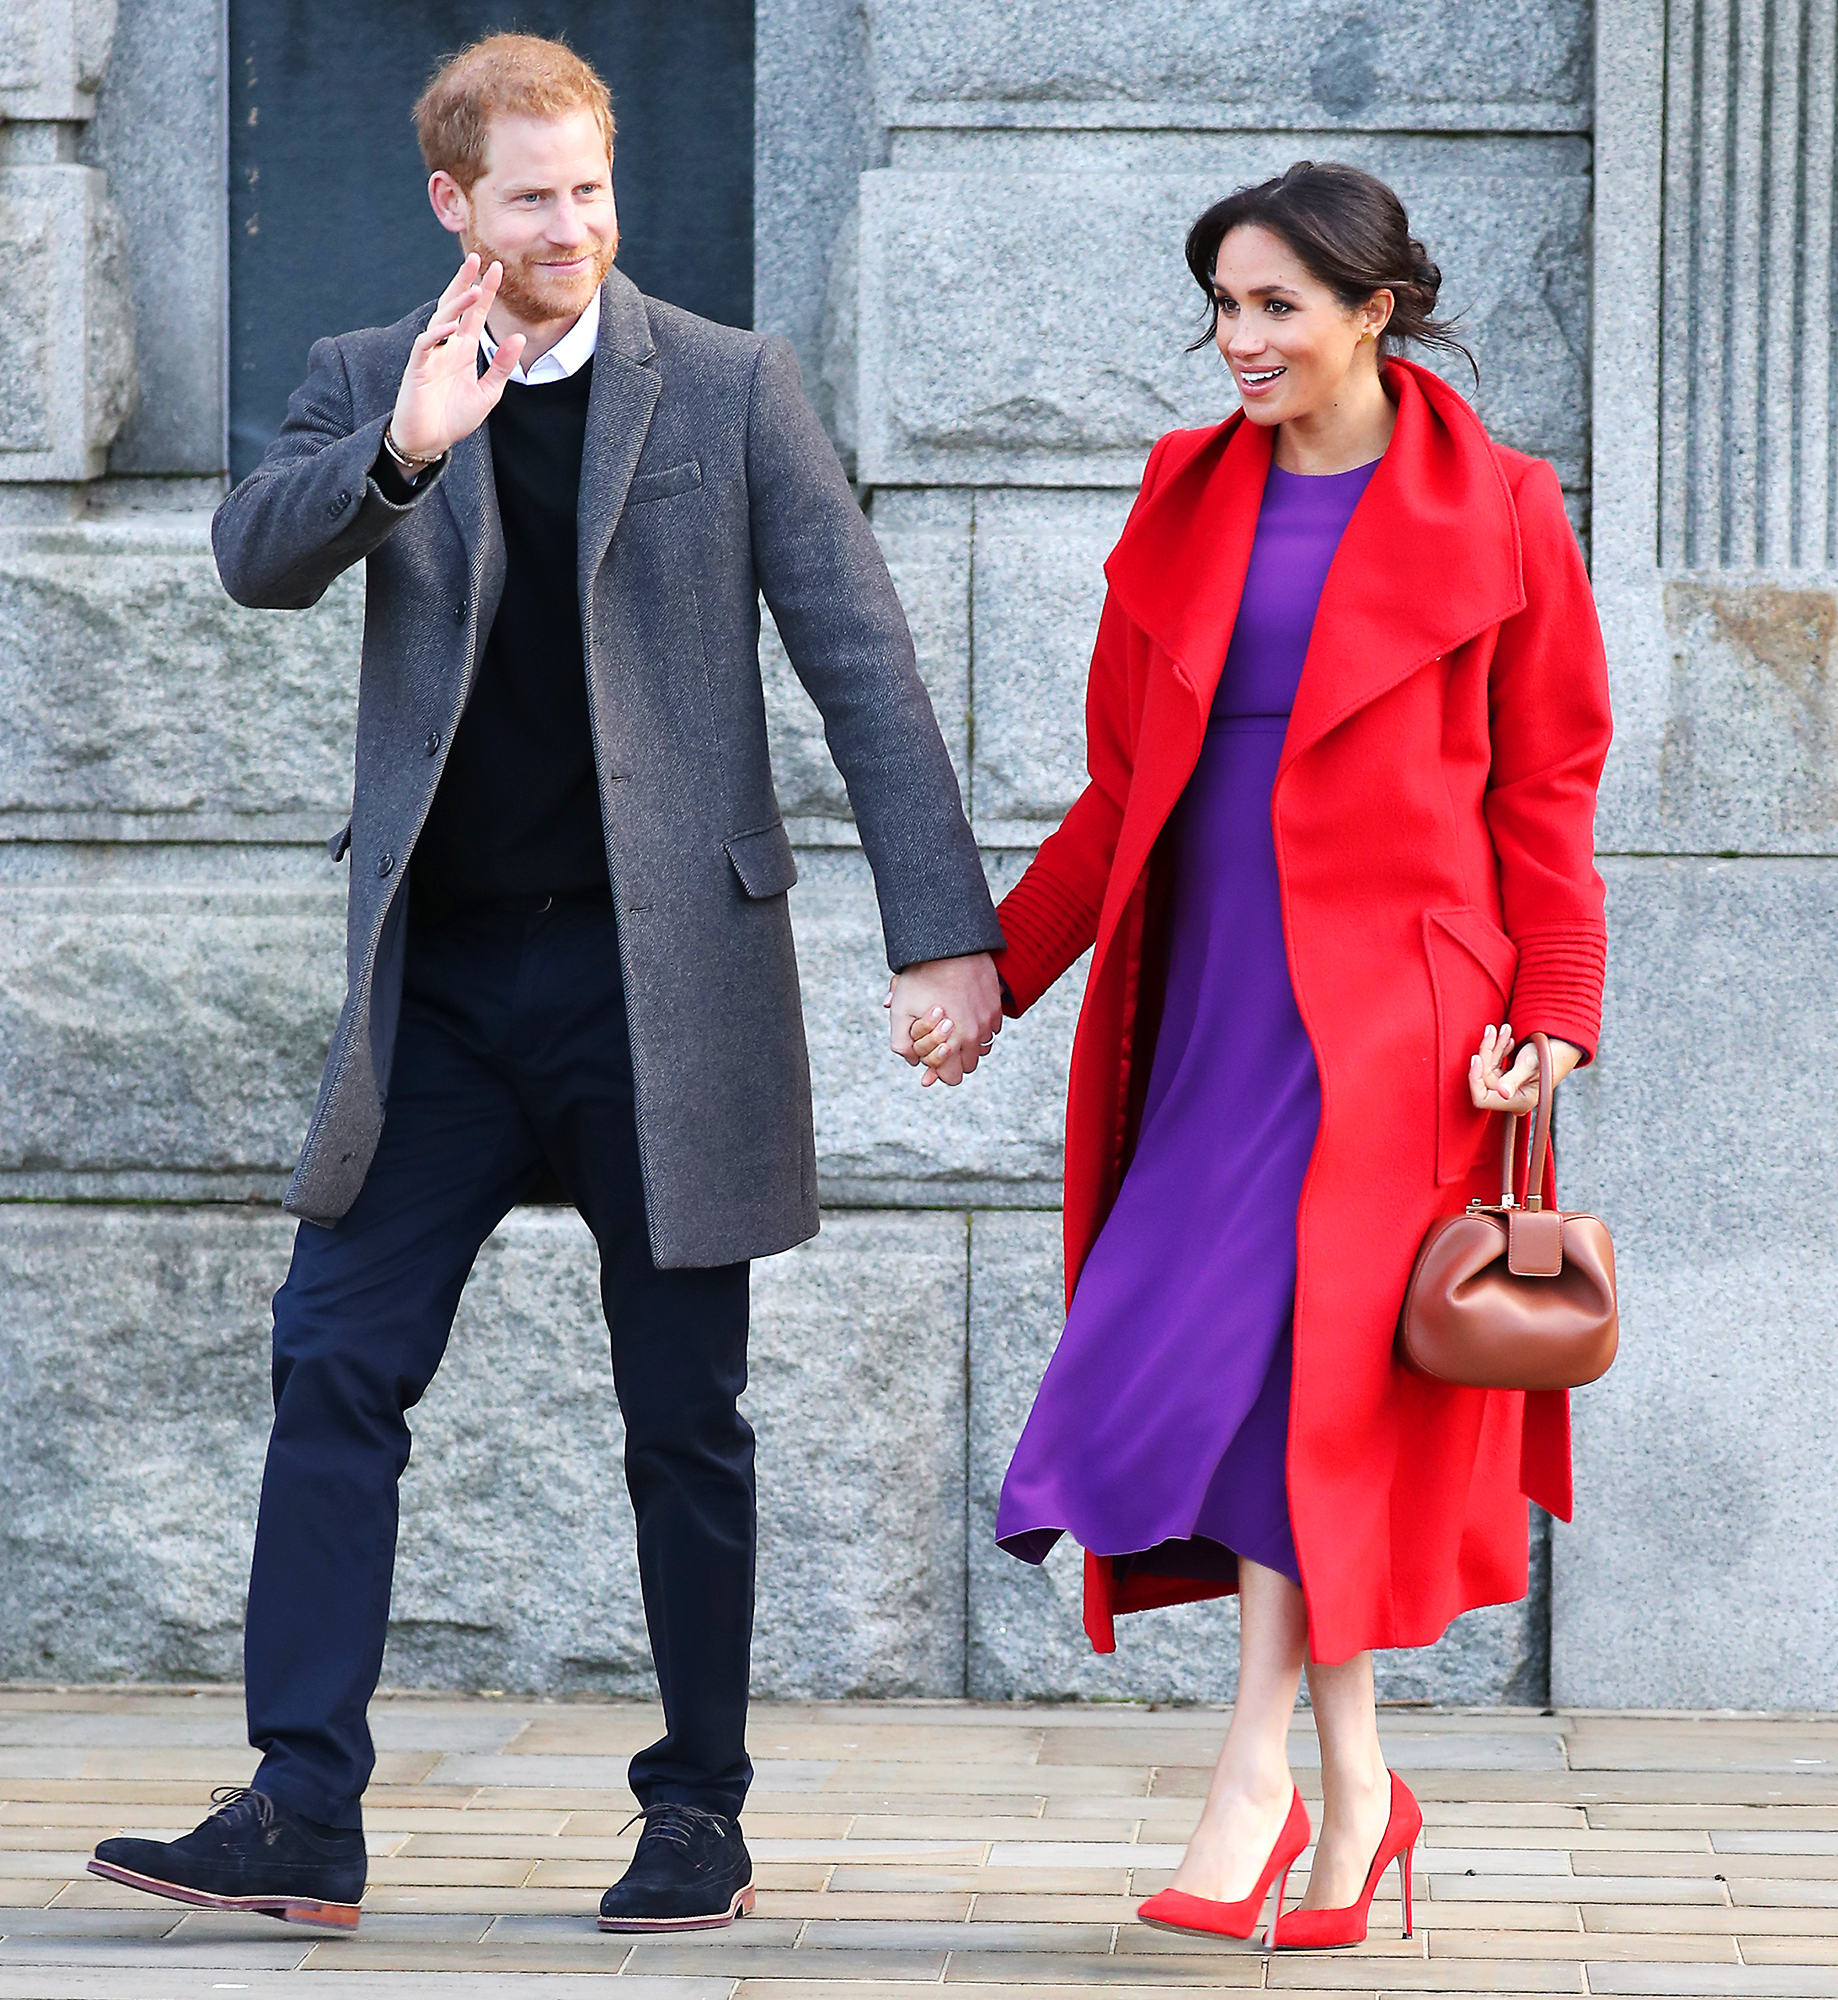 prince-harry-duchess-meghan-due-date - Due date alert! While talking to locals in Birkenhead, England, with her husband on January 14, Meghan said that their baby would arrive in late April or early May.